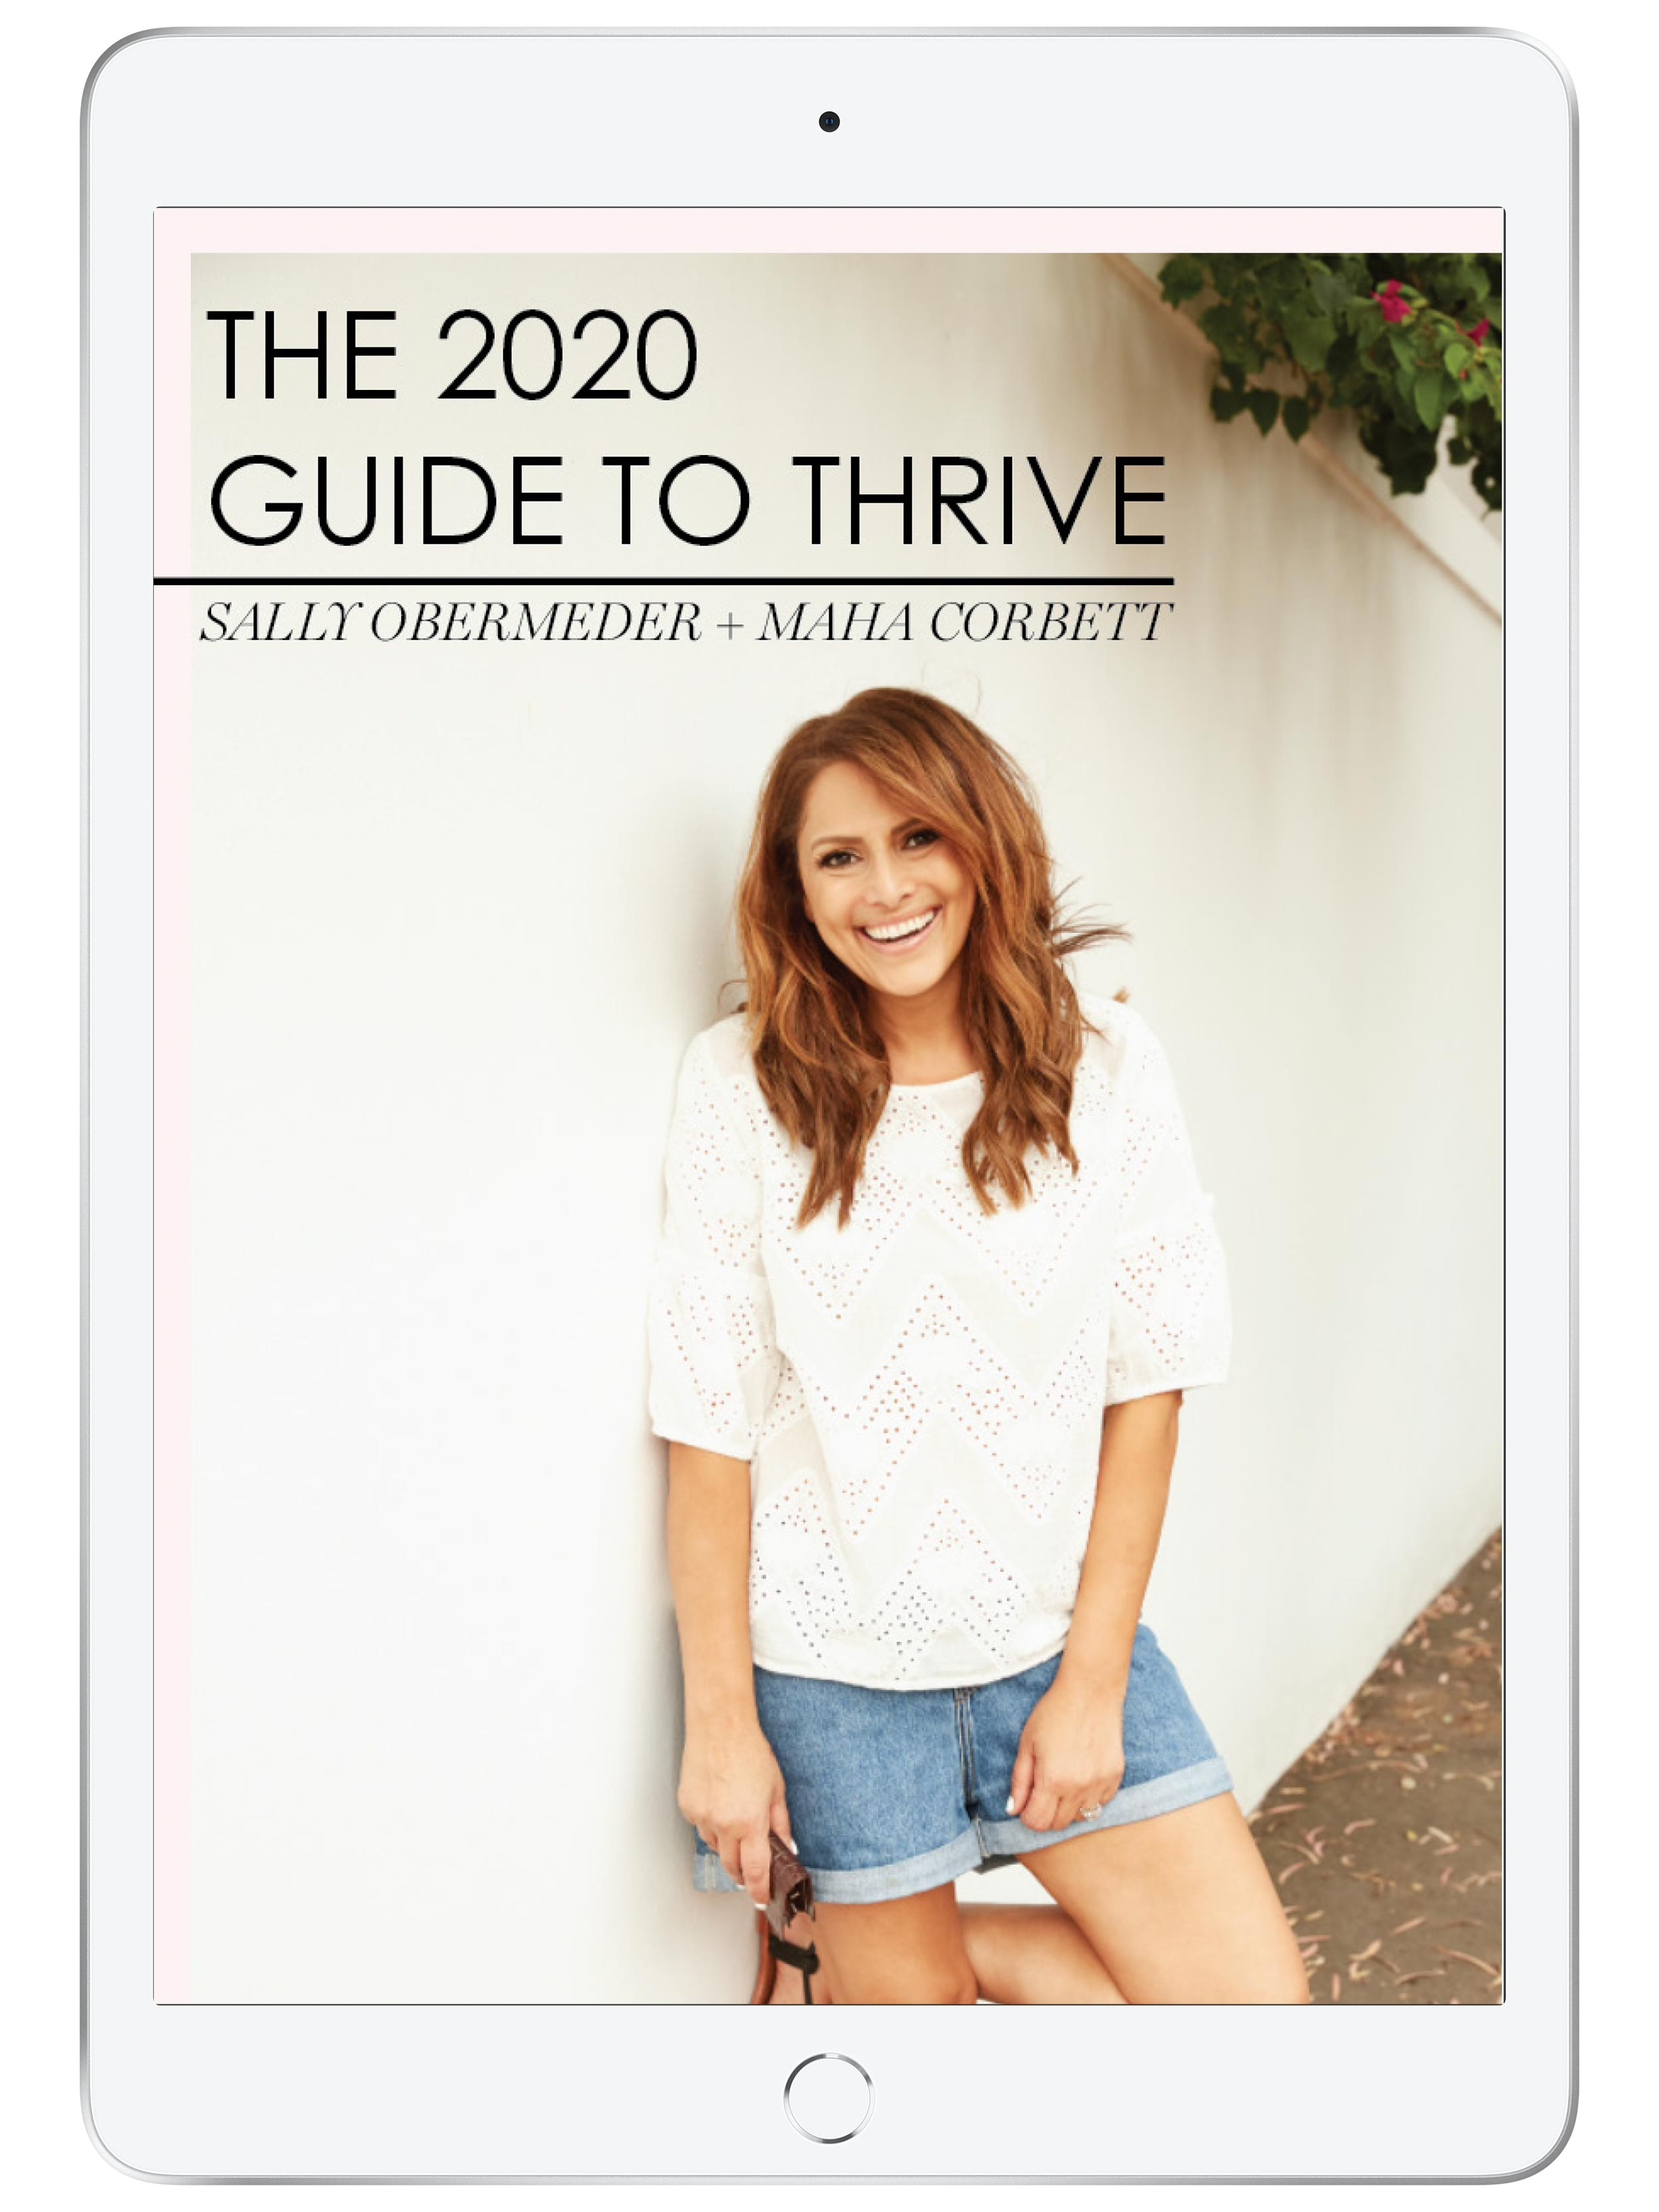 THE 2020 GUIDE TO THRIVE (E-BOOK)